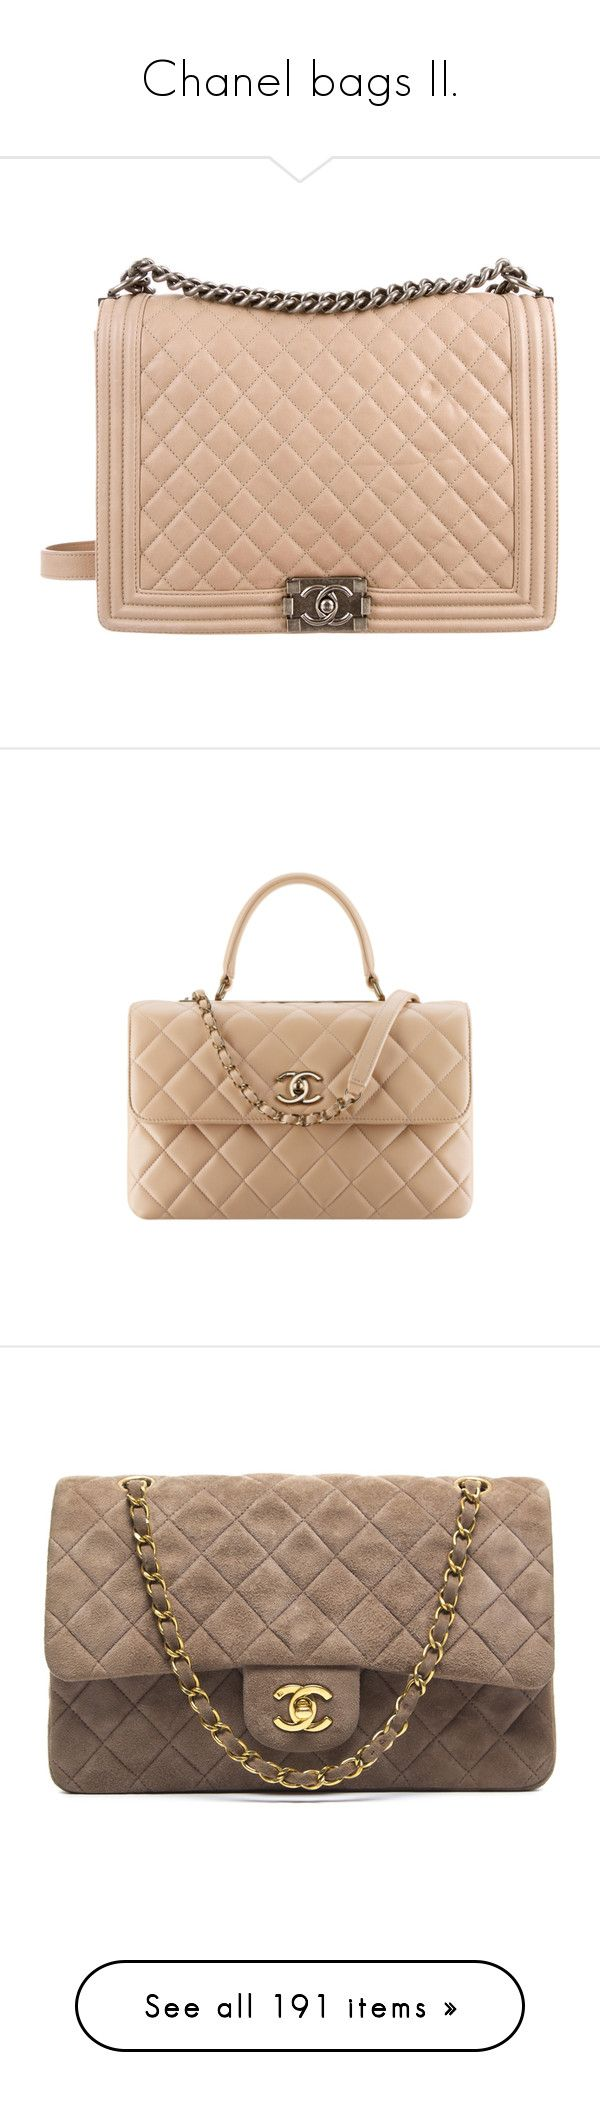 """Chanel bags II."" by plaraa on Polyvore featuring bags, handbags, shoulder bags, purses, bolsas, chanel, neutrals, purse shoulder bag, handbags shoulder bags y quilted shoulder bag"